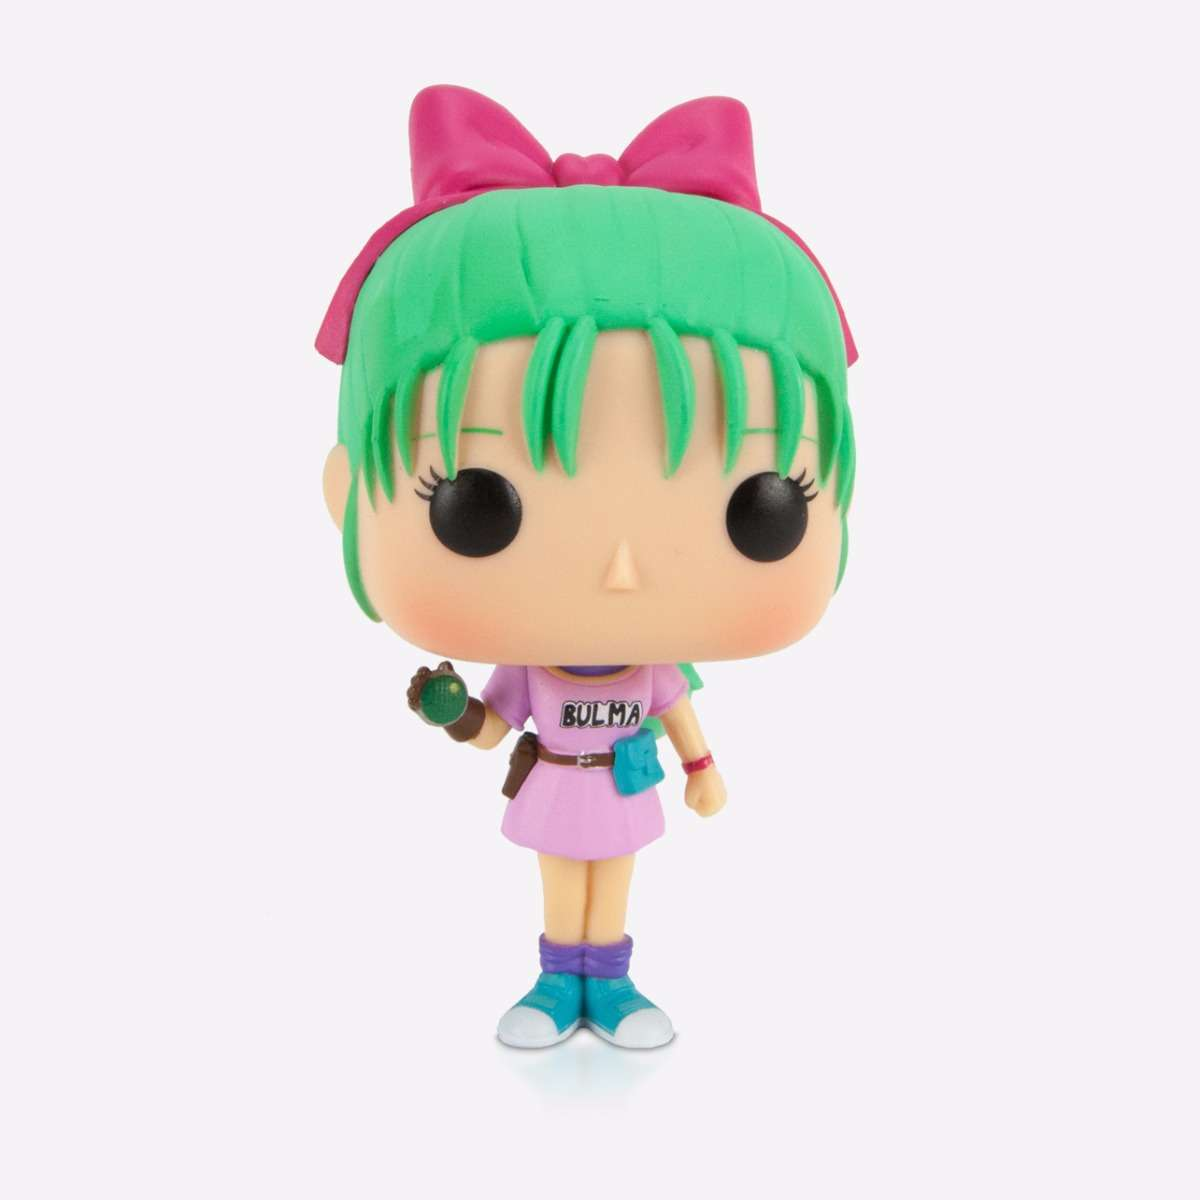 Funko POP - Bulma Figures & Collectibles